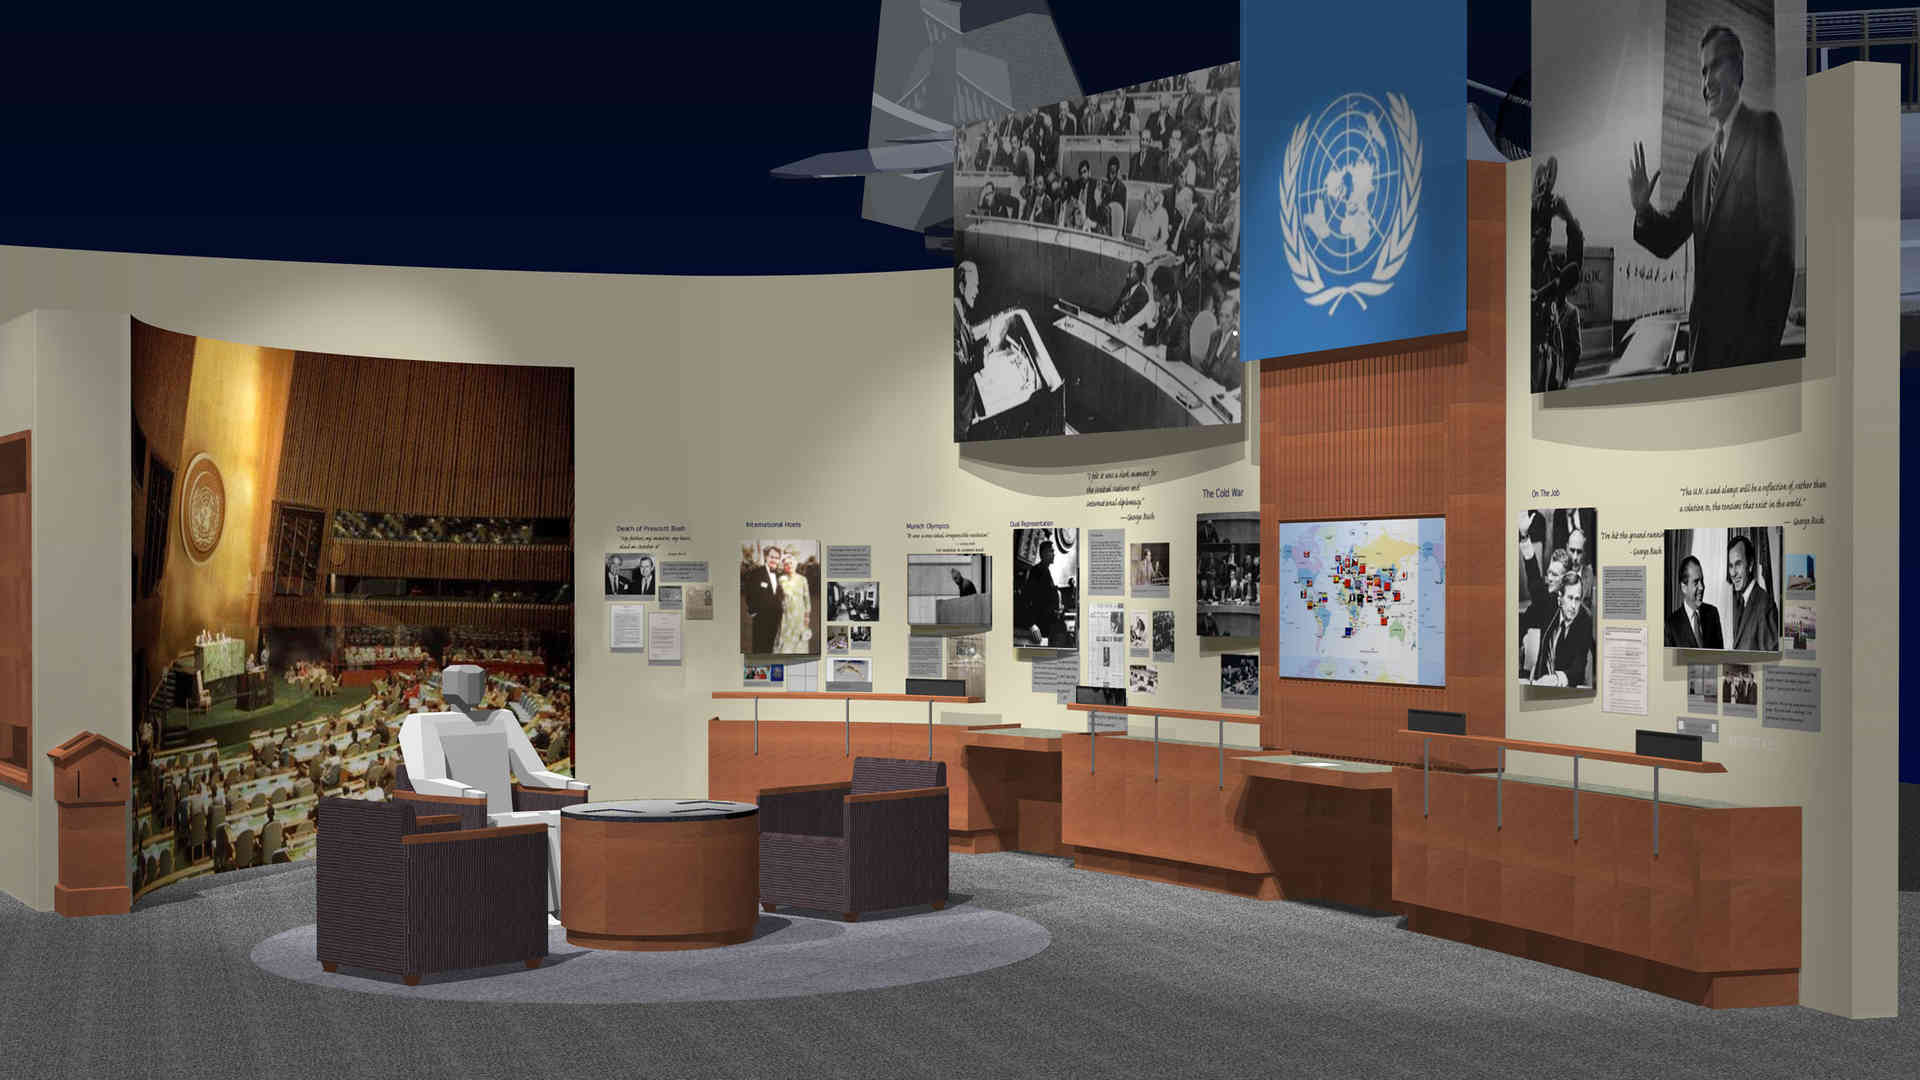 george bush library and museum united nation exhibit rendering